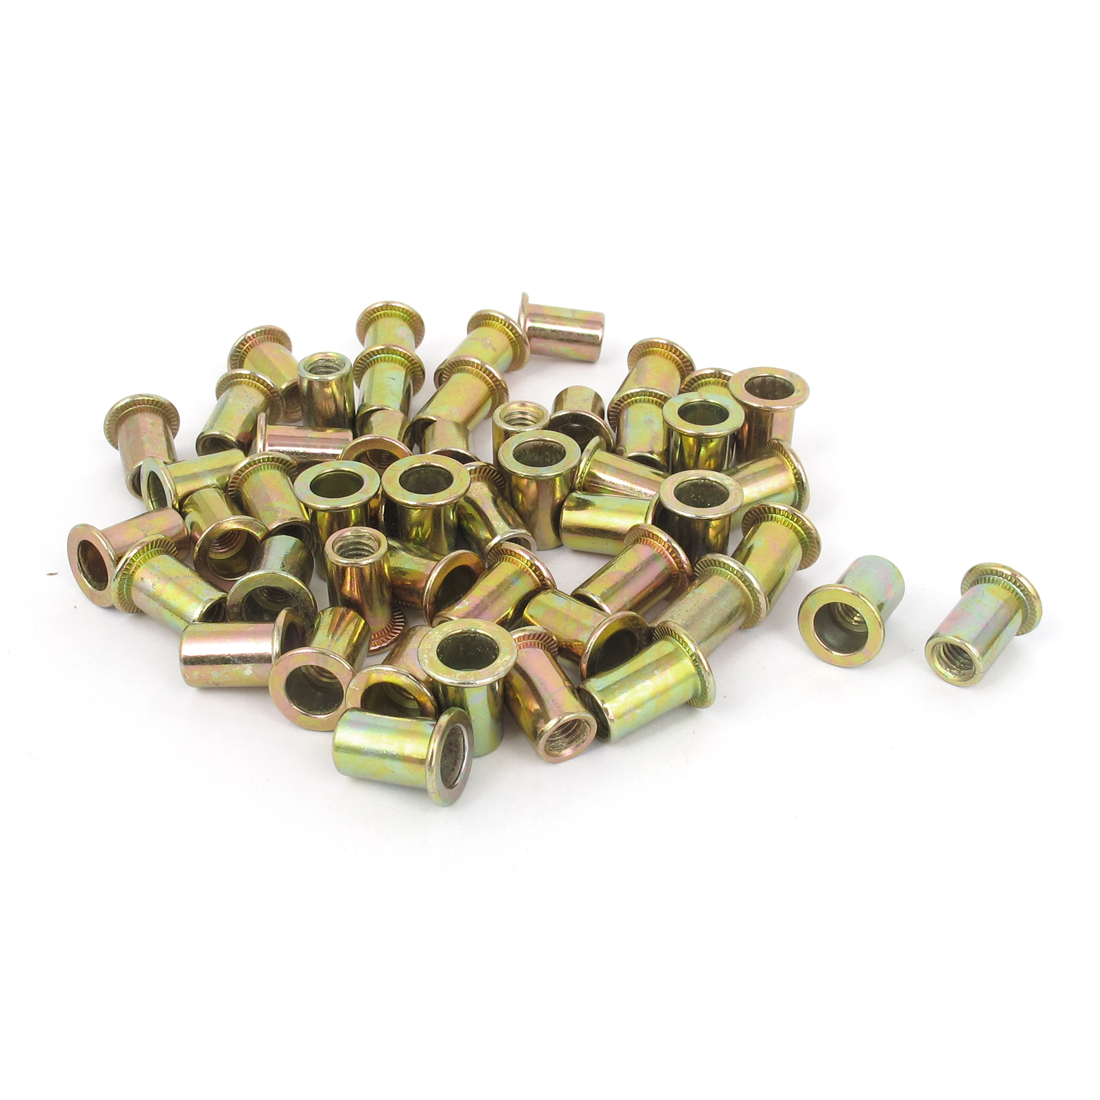 50 Pcs M6x15mm Flat Head Round Body Rivet Nuts Insert Nutserts Fasteners